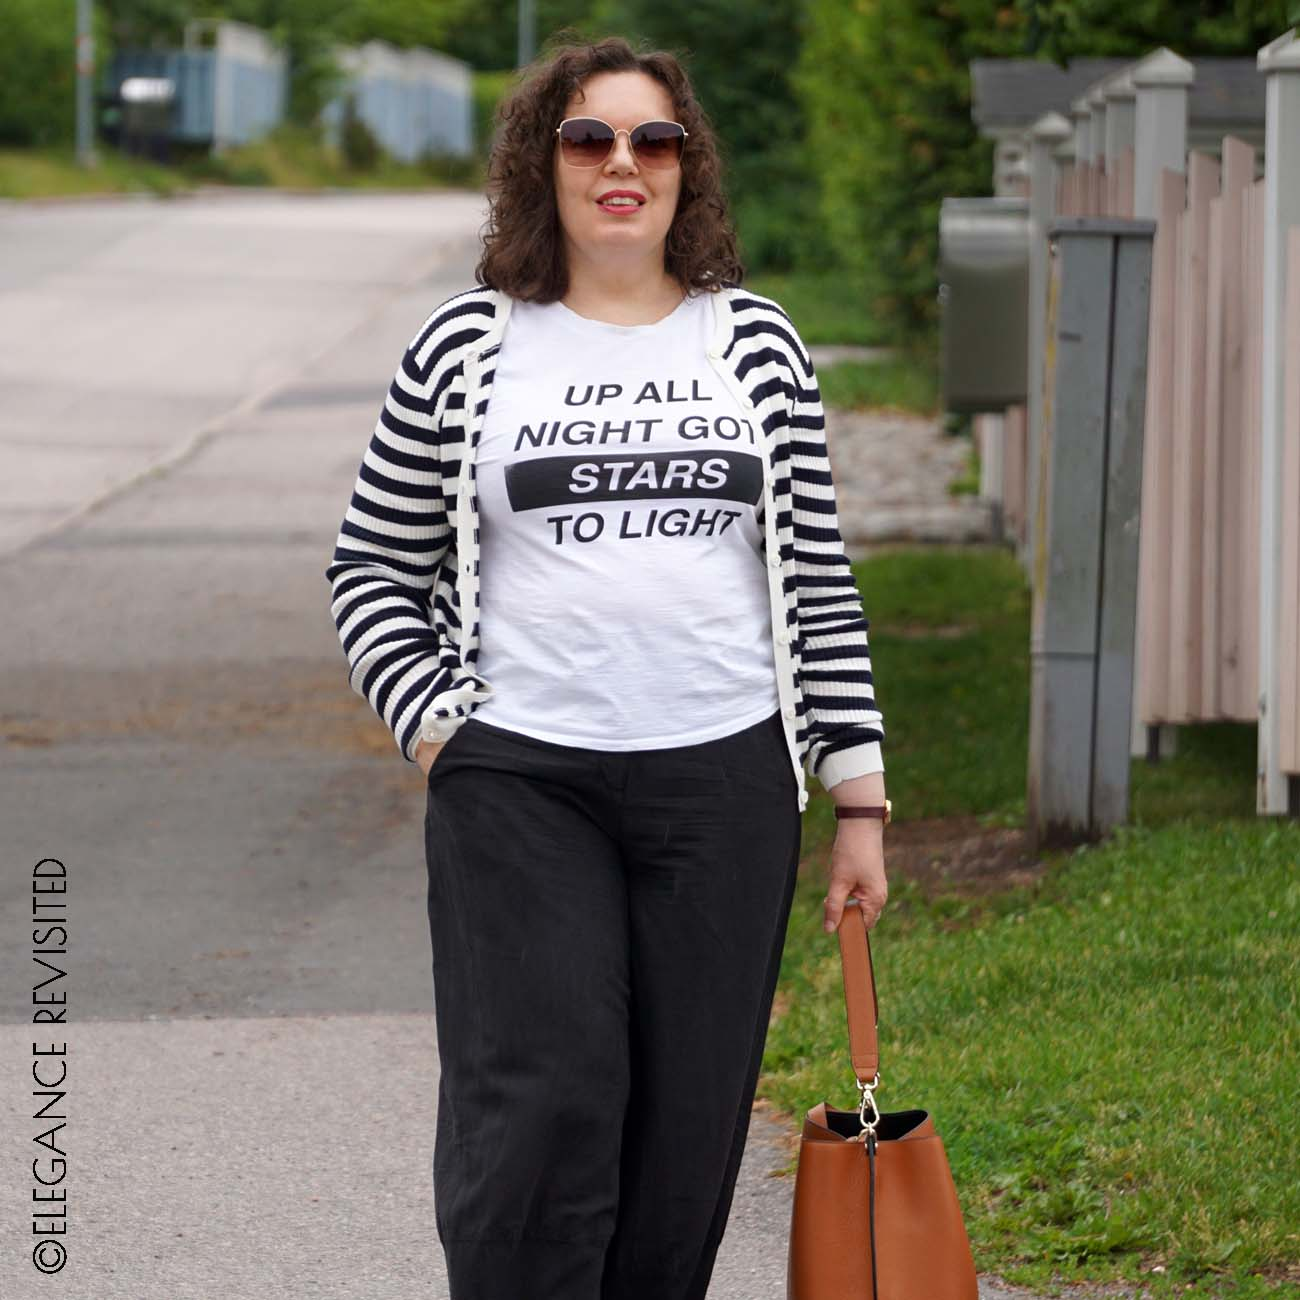 casual chic in black and white